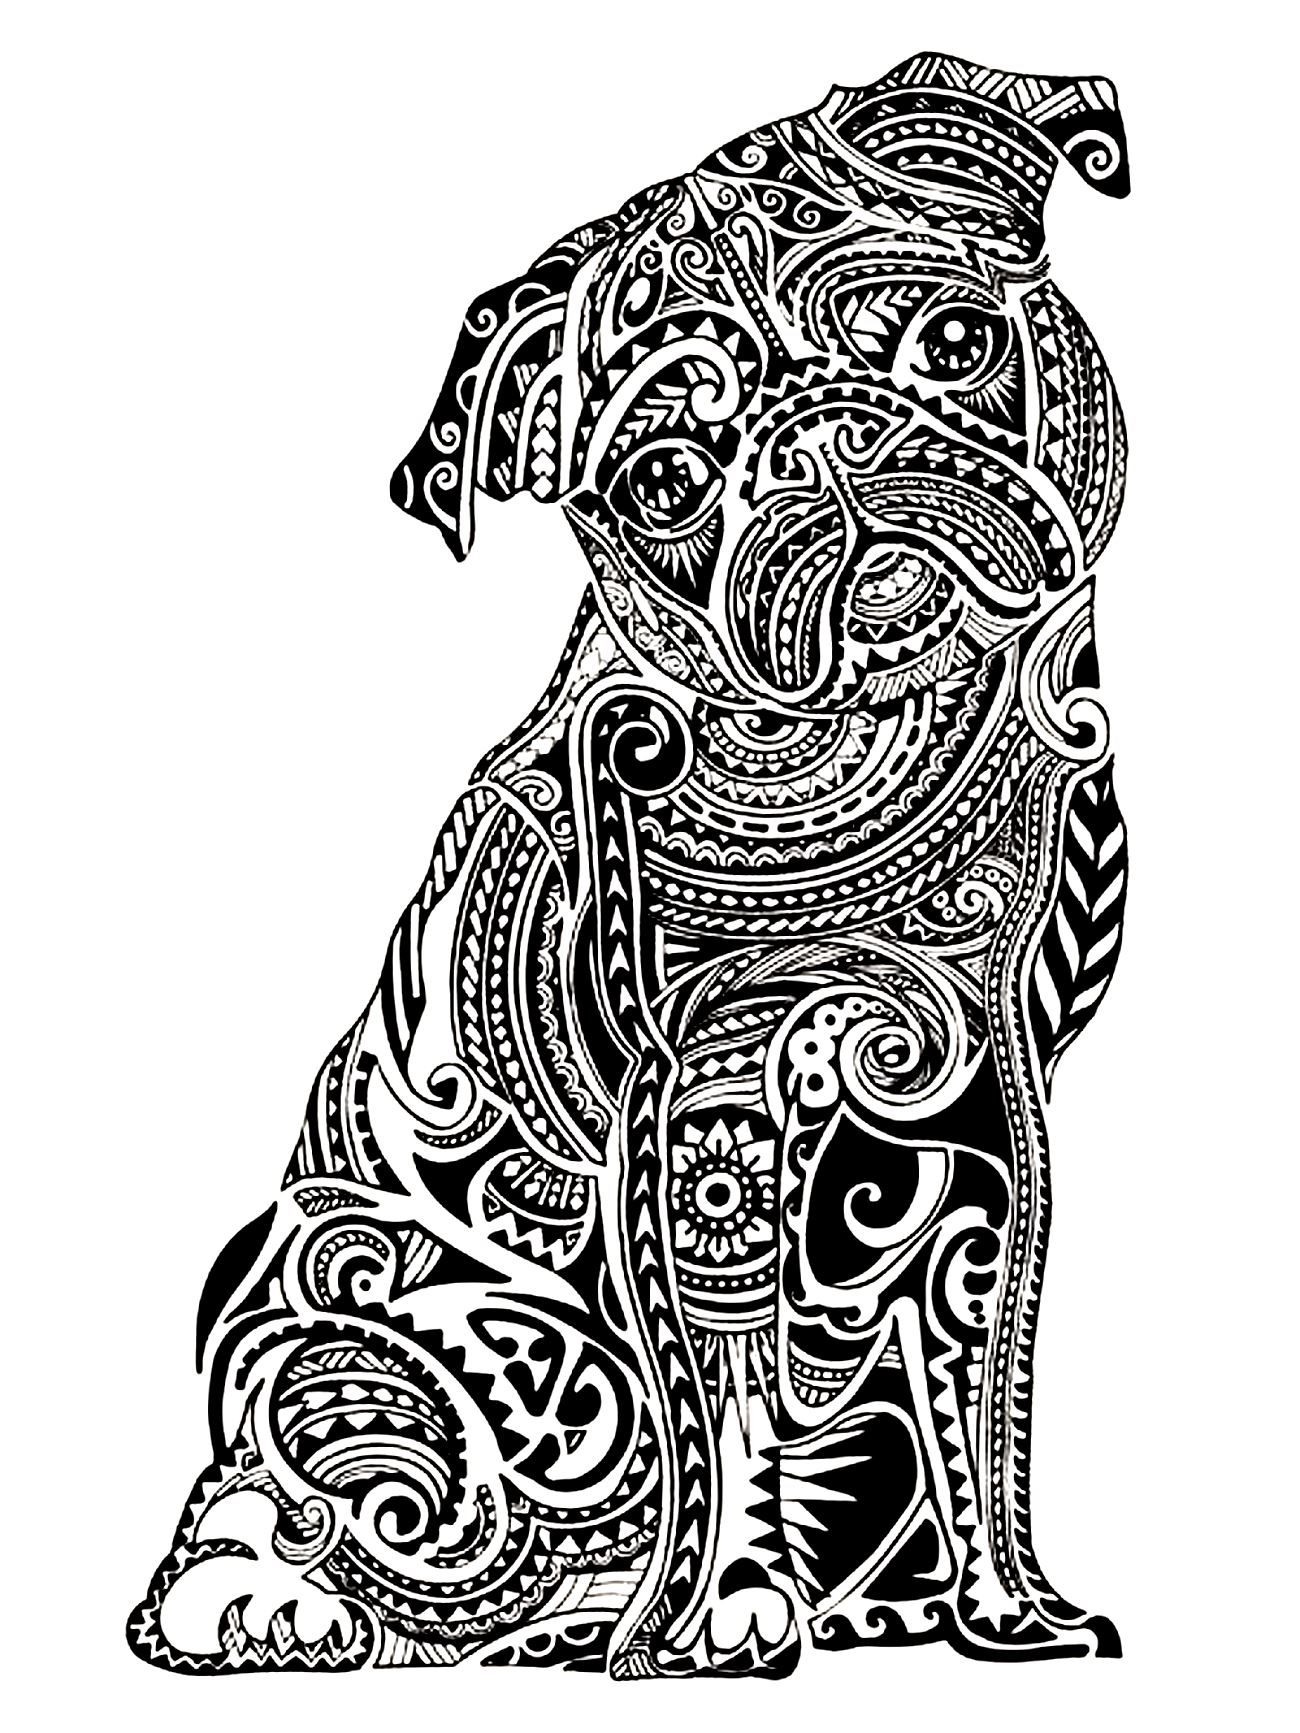 11 Free Printable Adult Coloring Pages Adult coloring Free